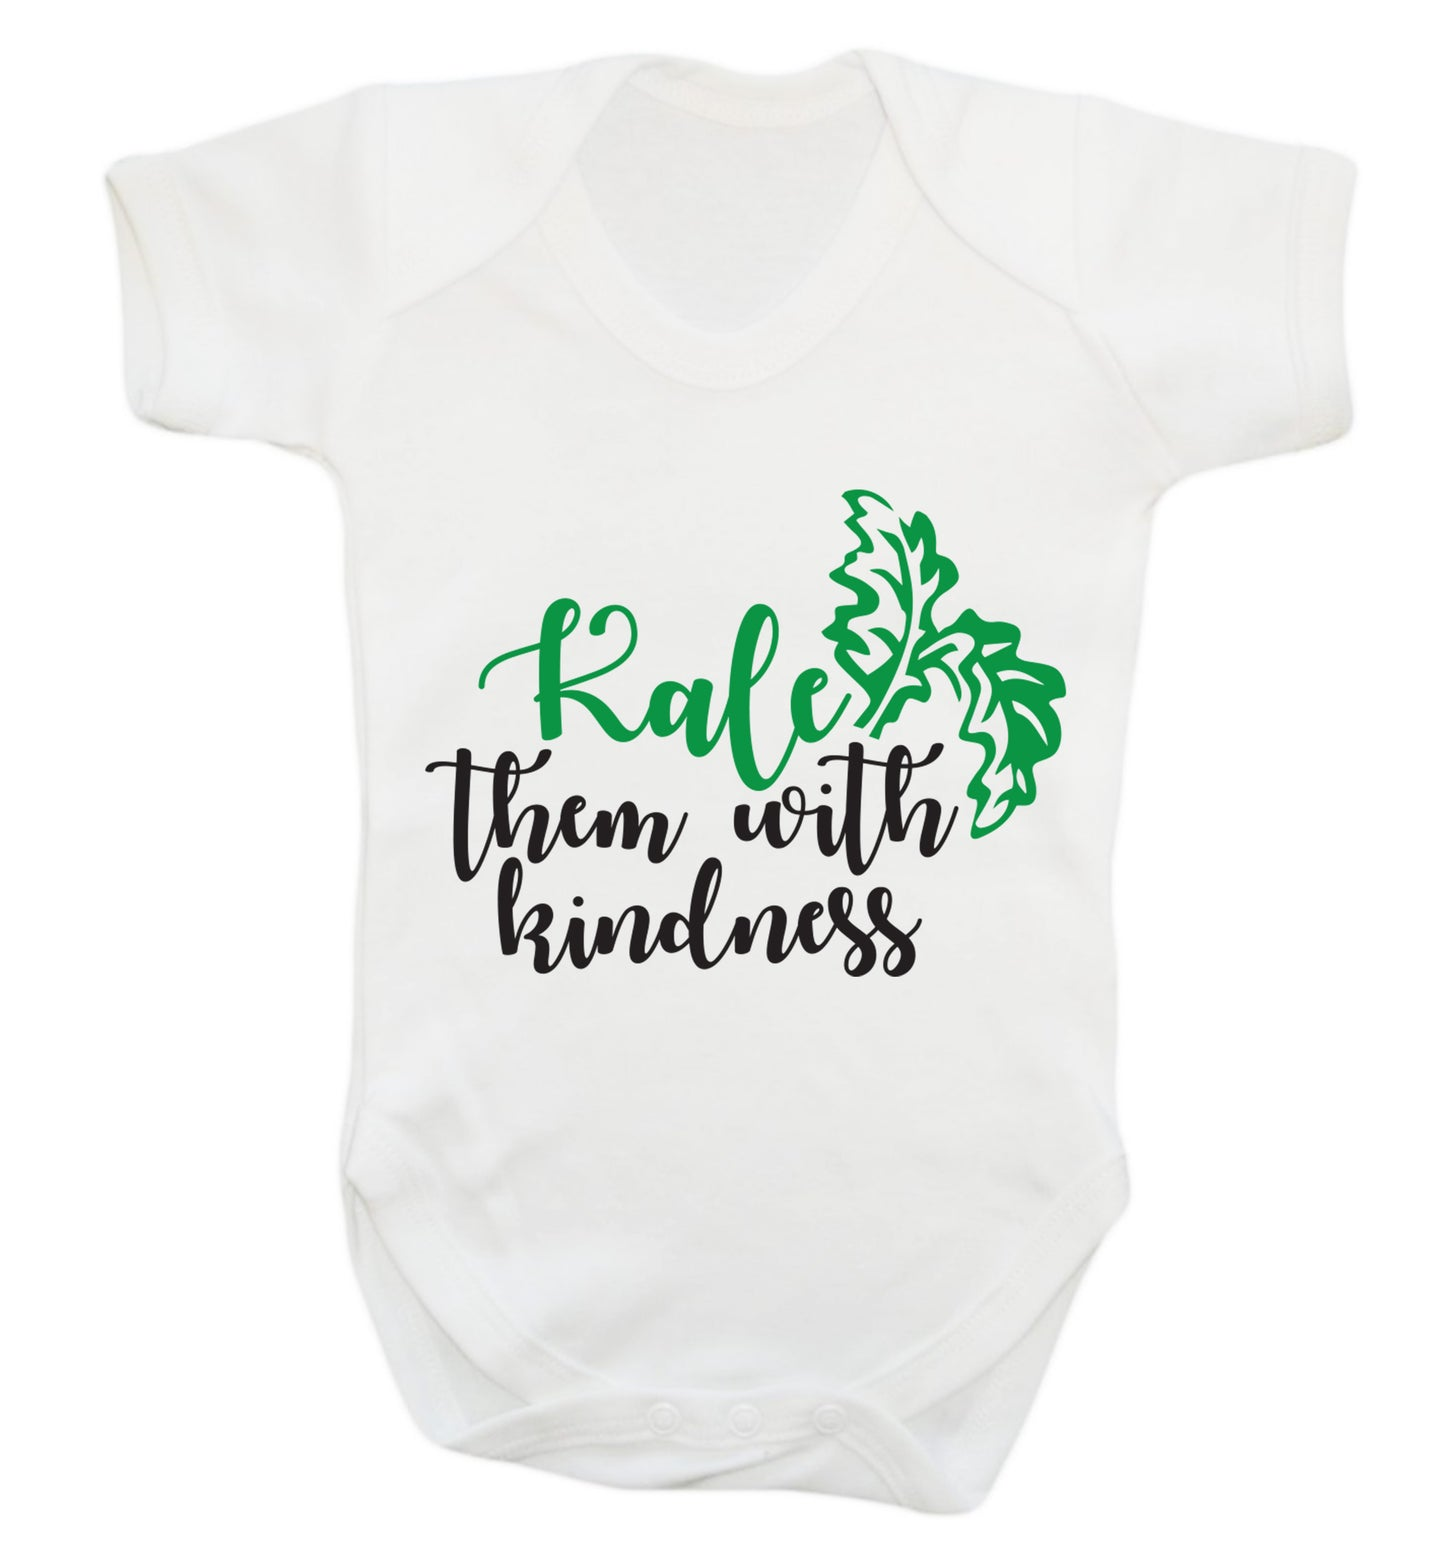 Kale them with kindness Baby Vest white 18-24 months